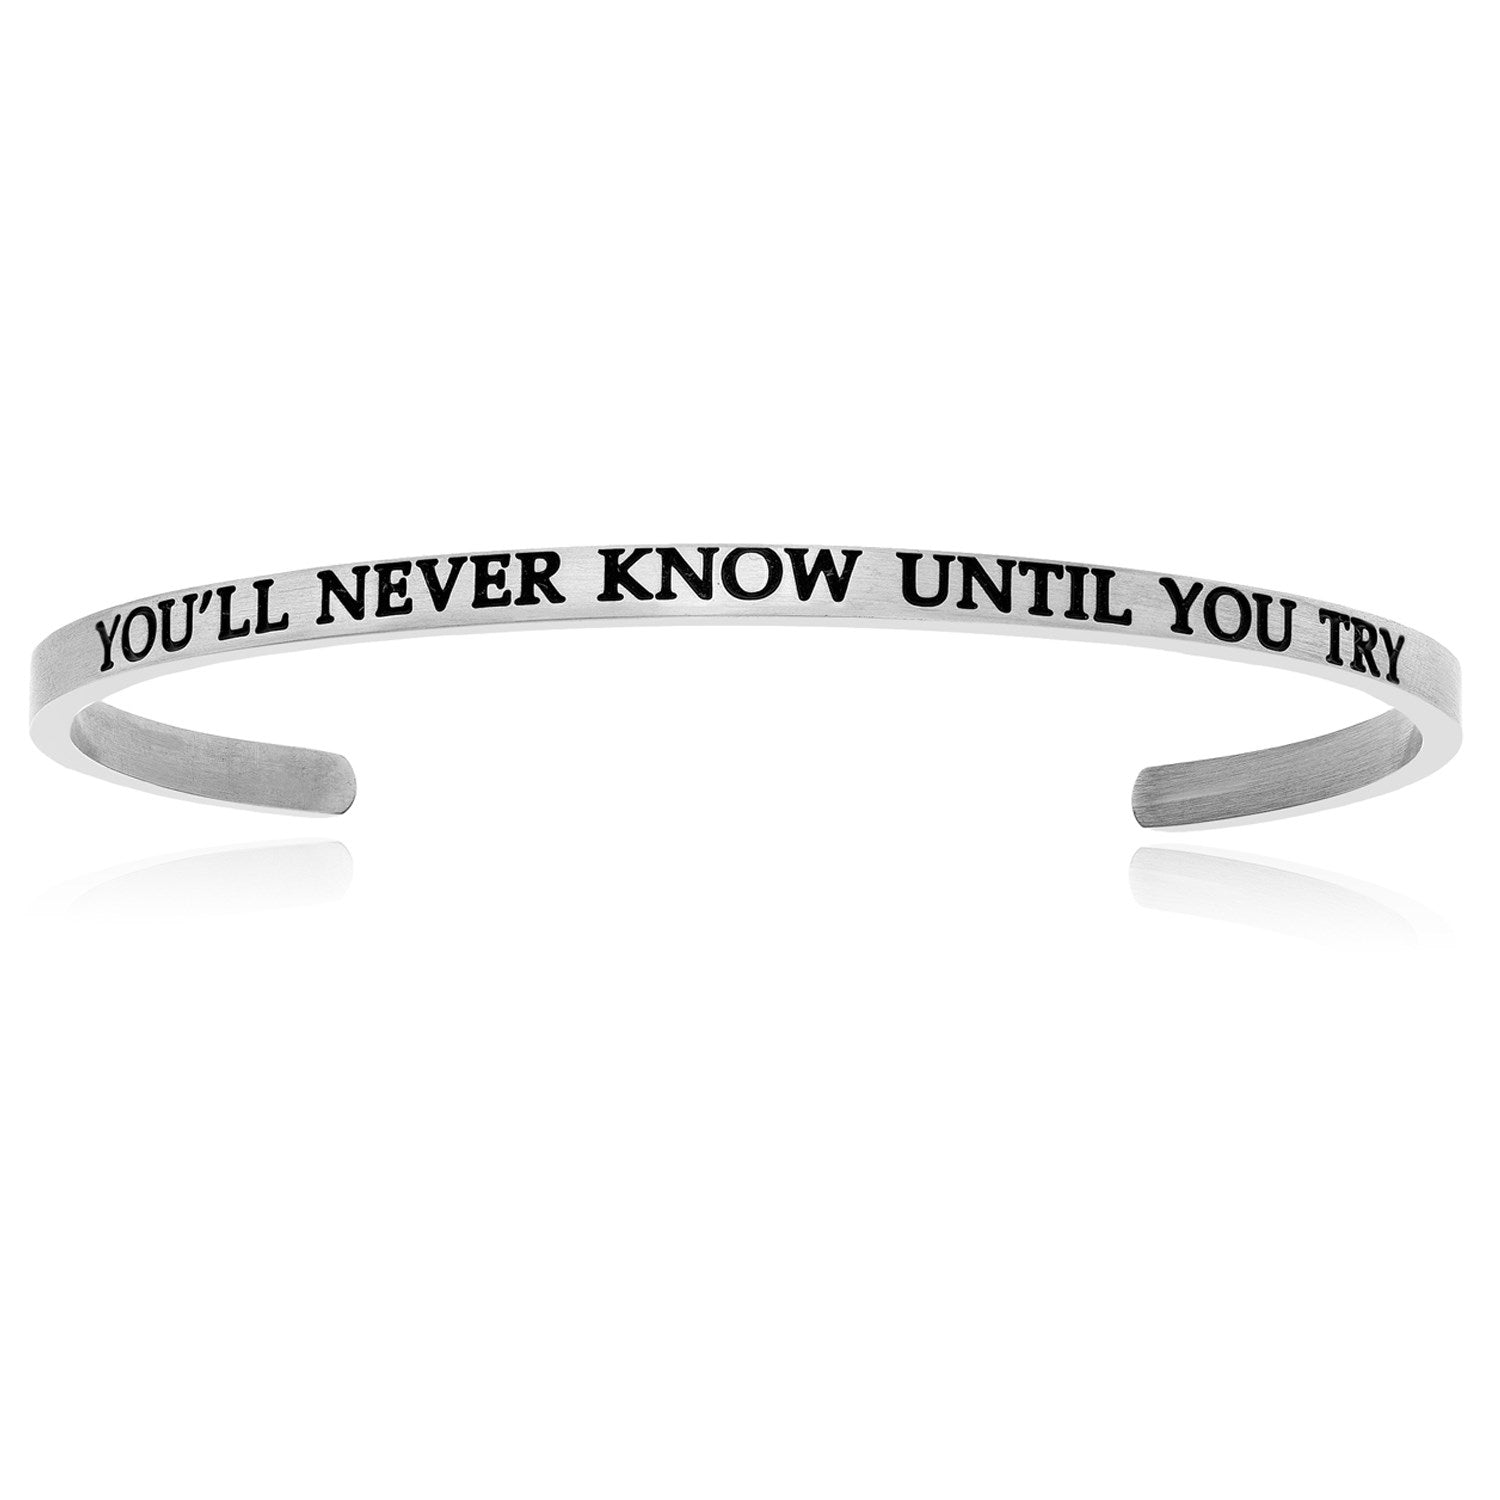 Stainless Steel You'll Never Know Until You Try Cuff Bracelet